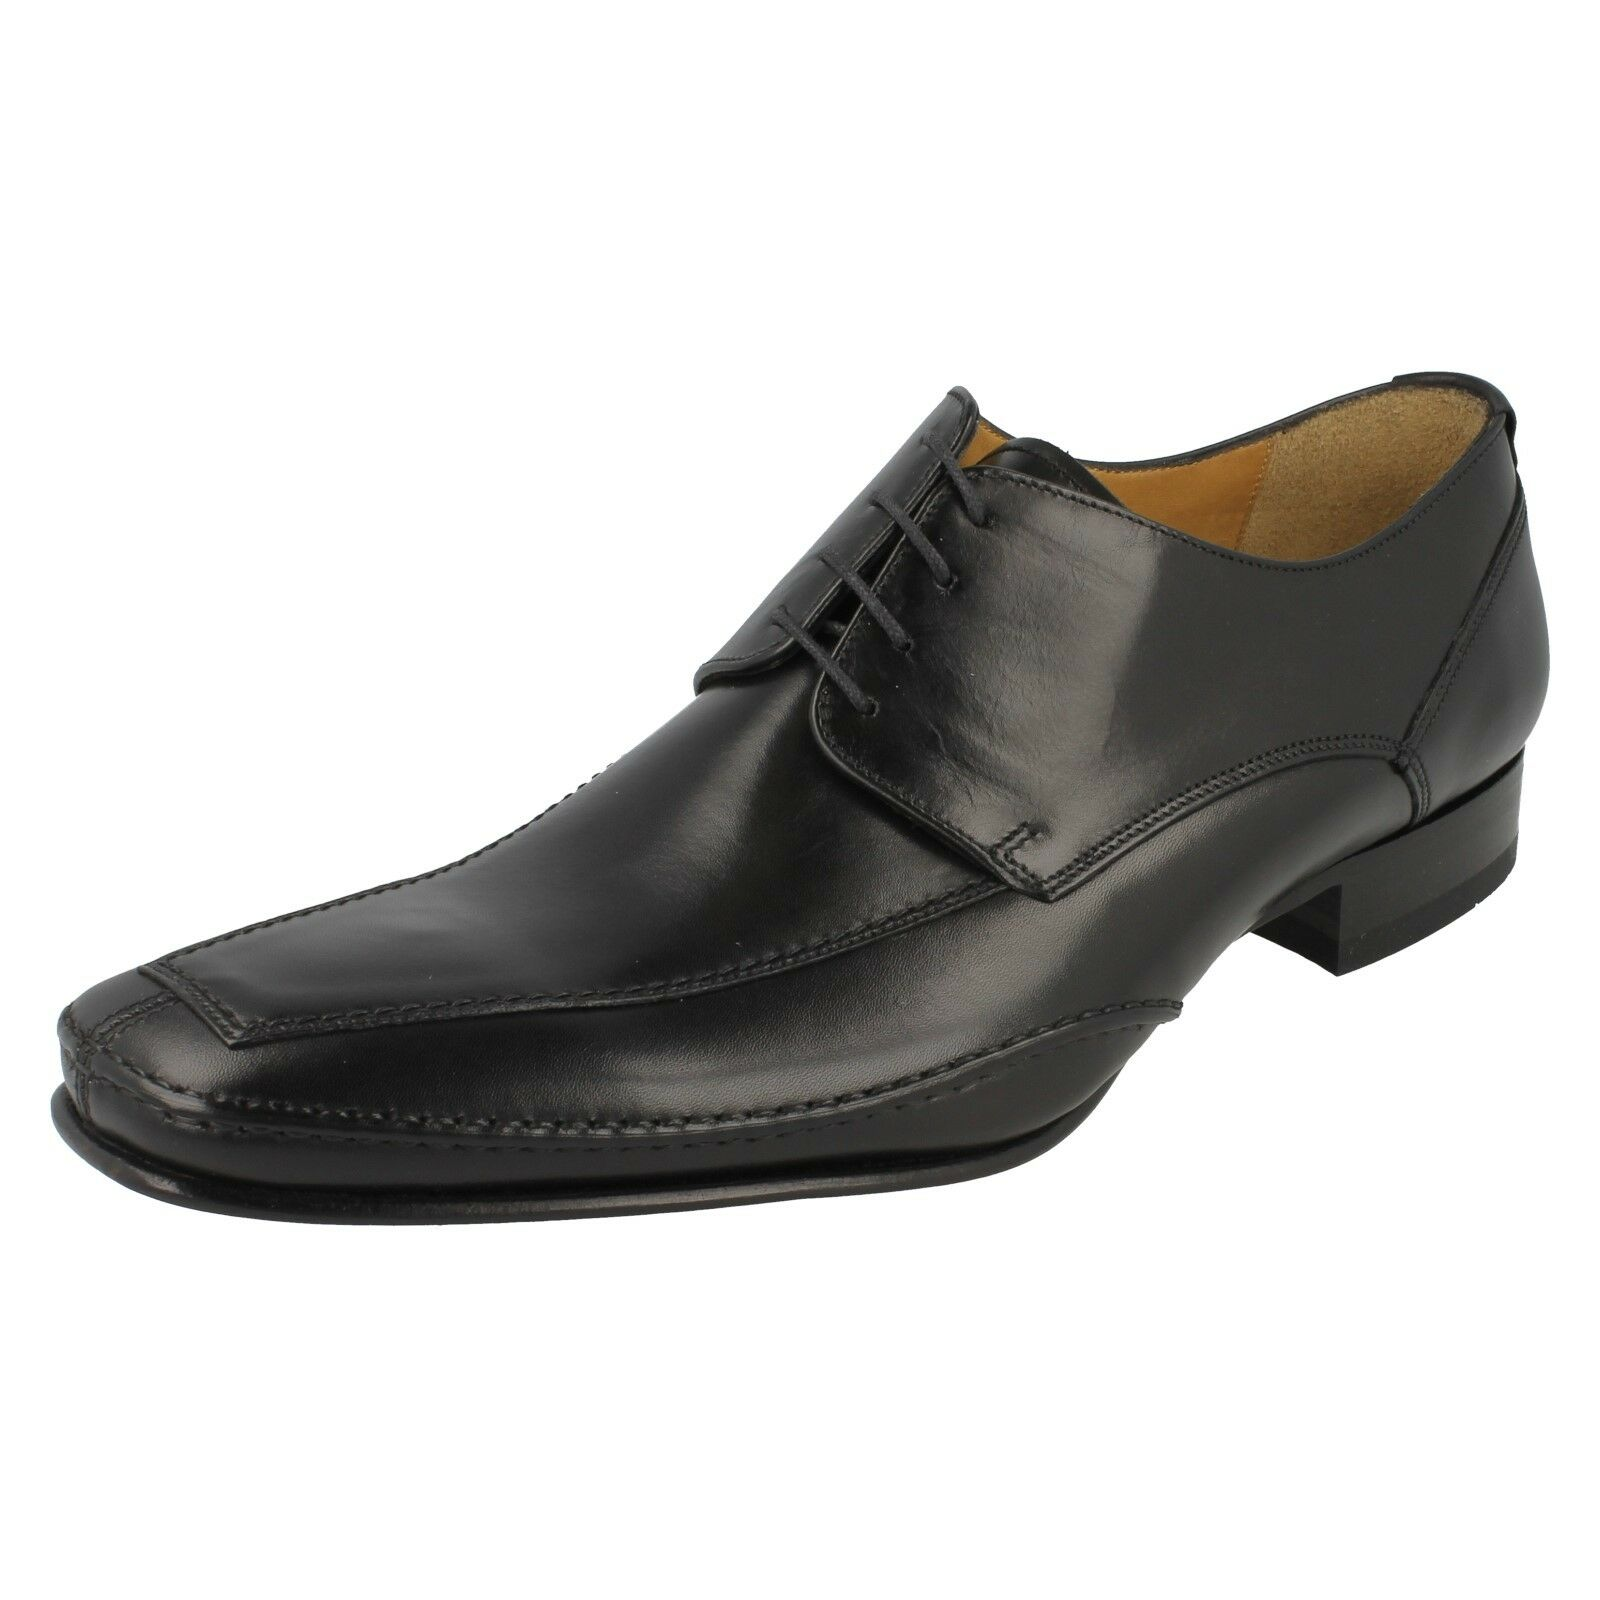 HURST -  Herren LOAKE LACE UP CLASSIC SMART LEATHER BLACK TAN CLASSIC UP FORMAL OFFICE Schuhe 2867f0